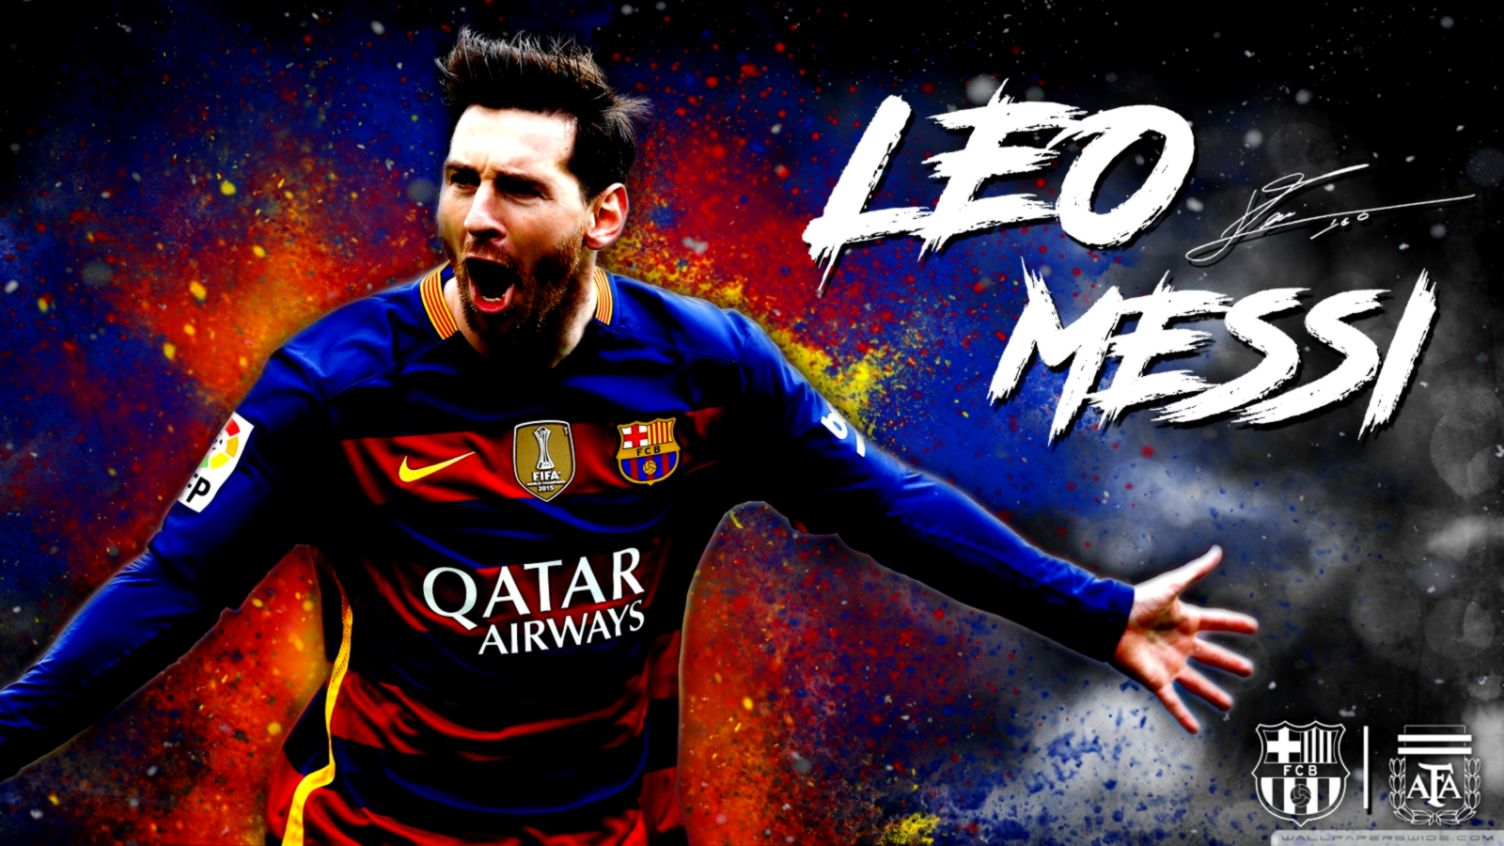 Messi Wallpaper Hd Wallpapers Images